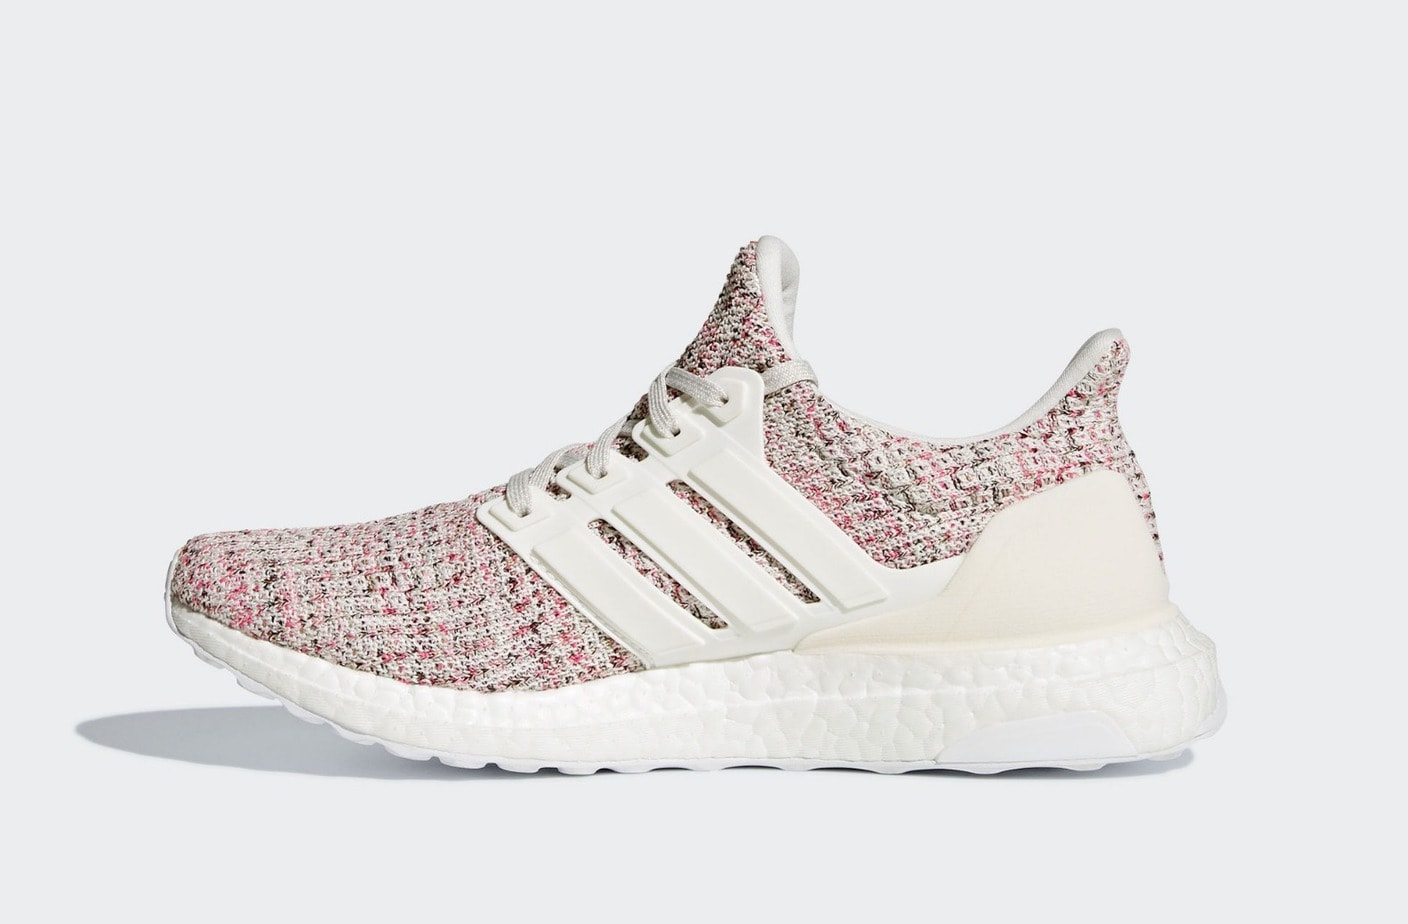 eabb90350 adidas Ultra Boost 4.0 WMNS Release Date  Available Now Price   180. Color   Chalk Pearl Cloud White Shock Pink Style Code  BB6496